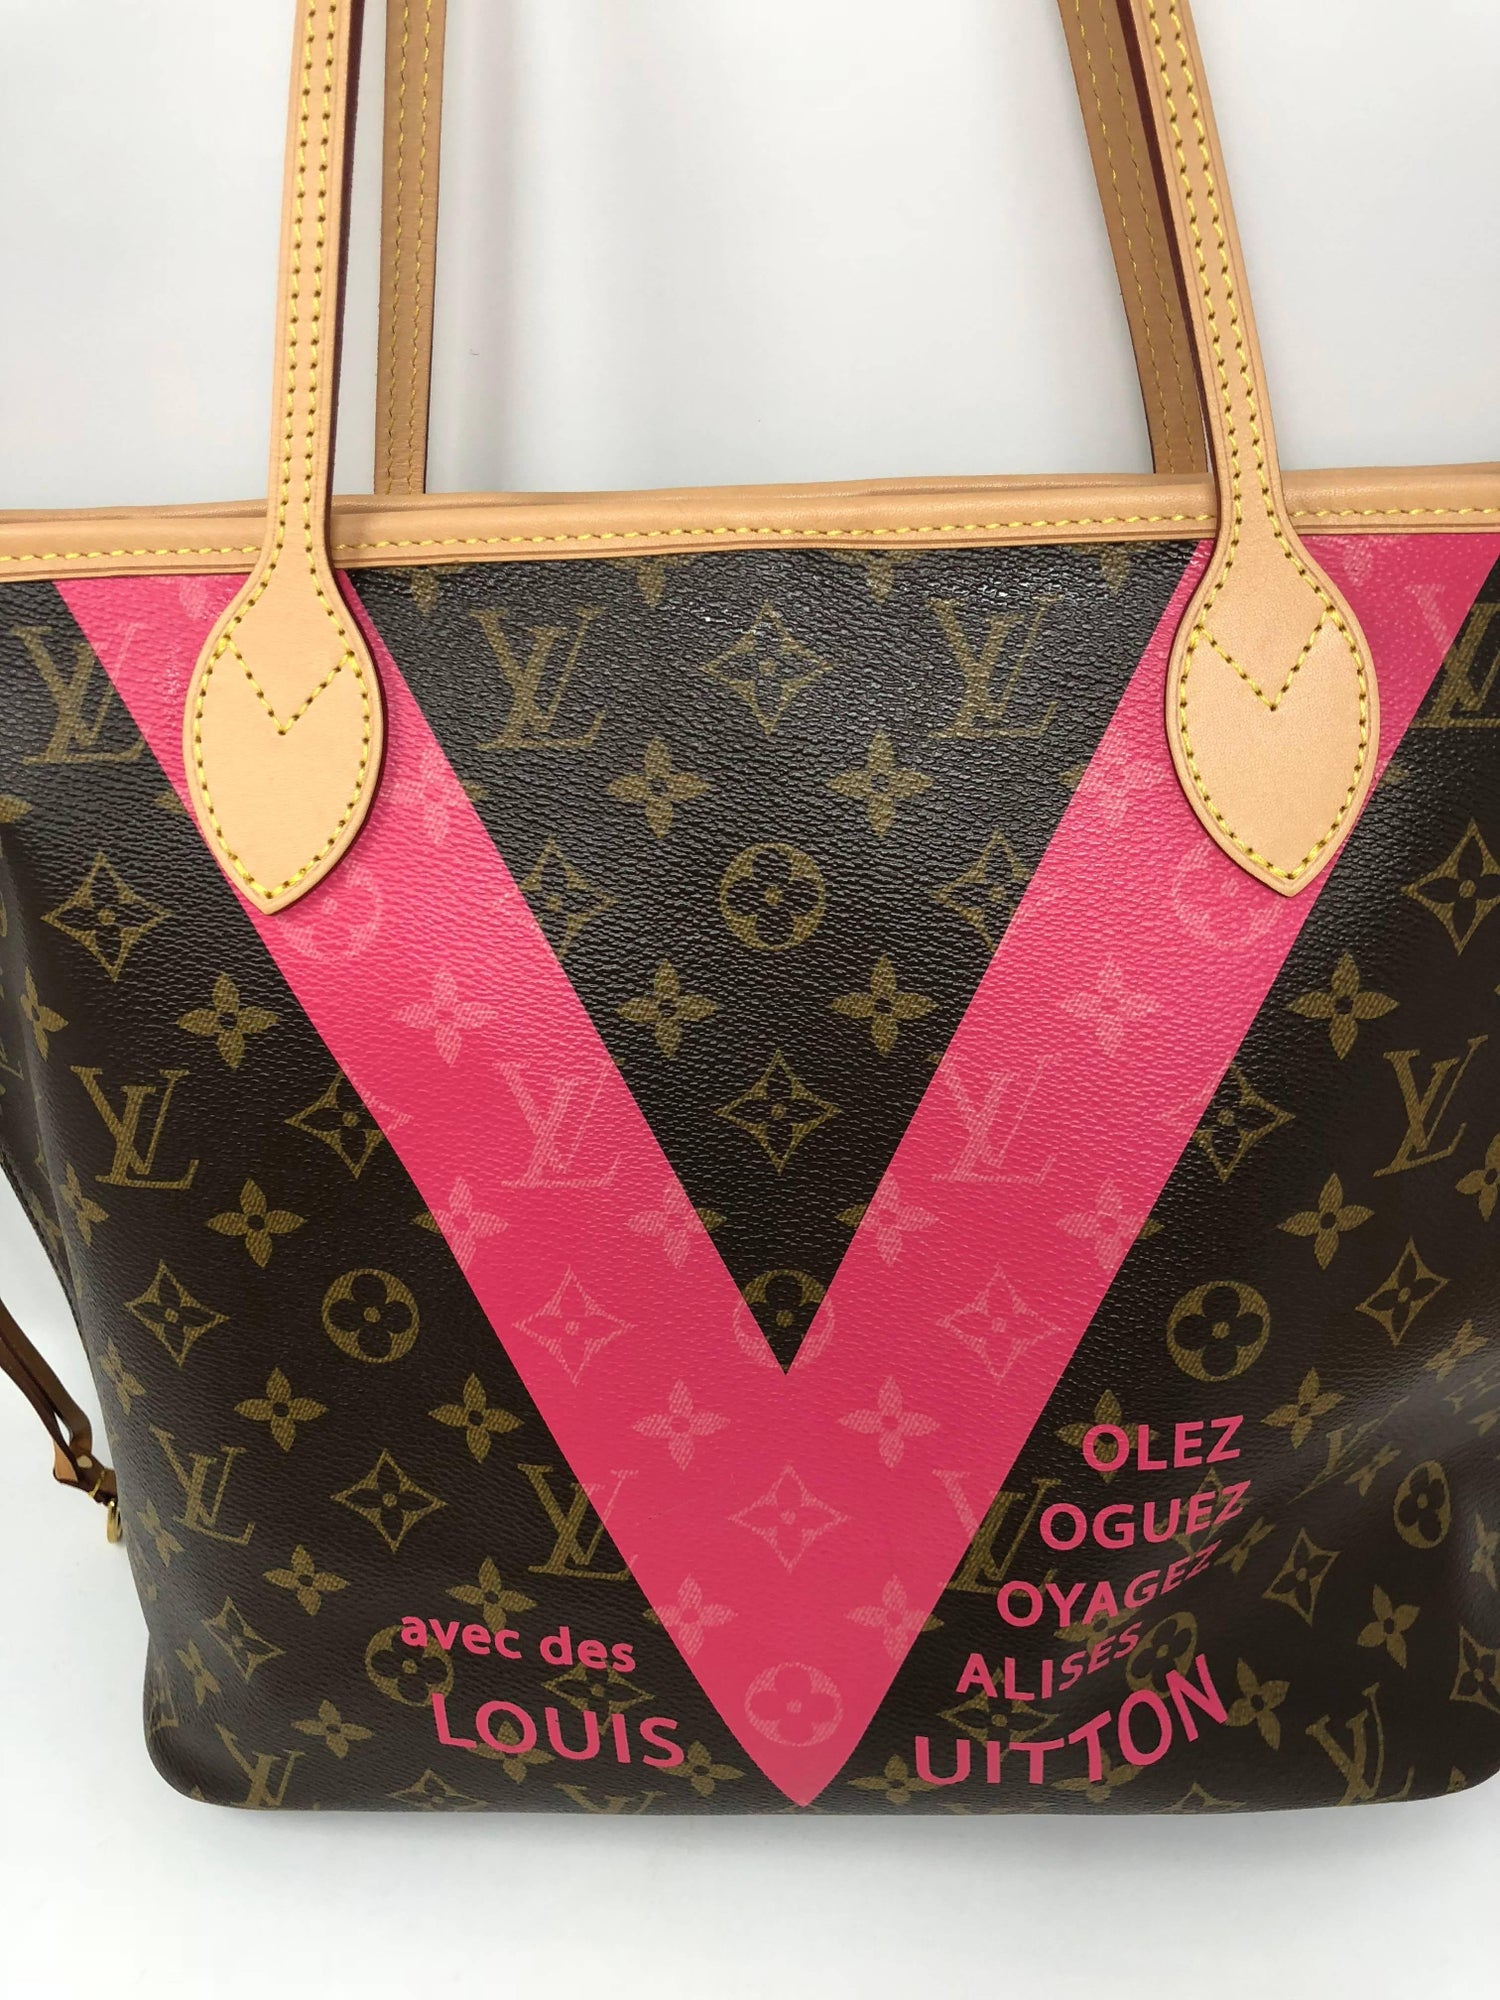 211cd0d98de2 Louis Vuitton Neverfull MM Limited Edition V Pink Brown at 1stdibs